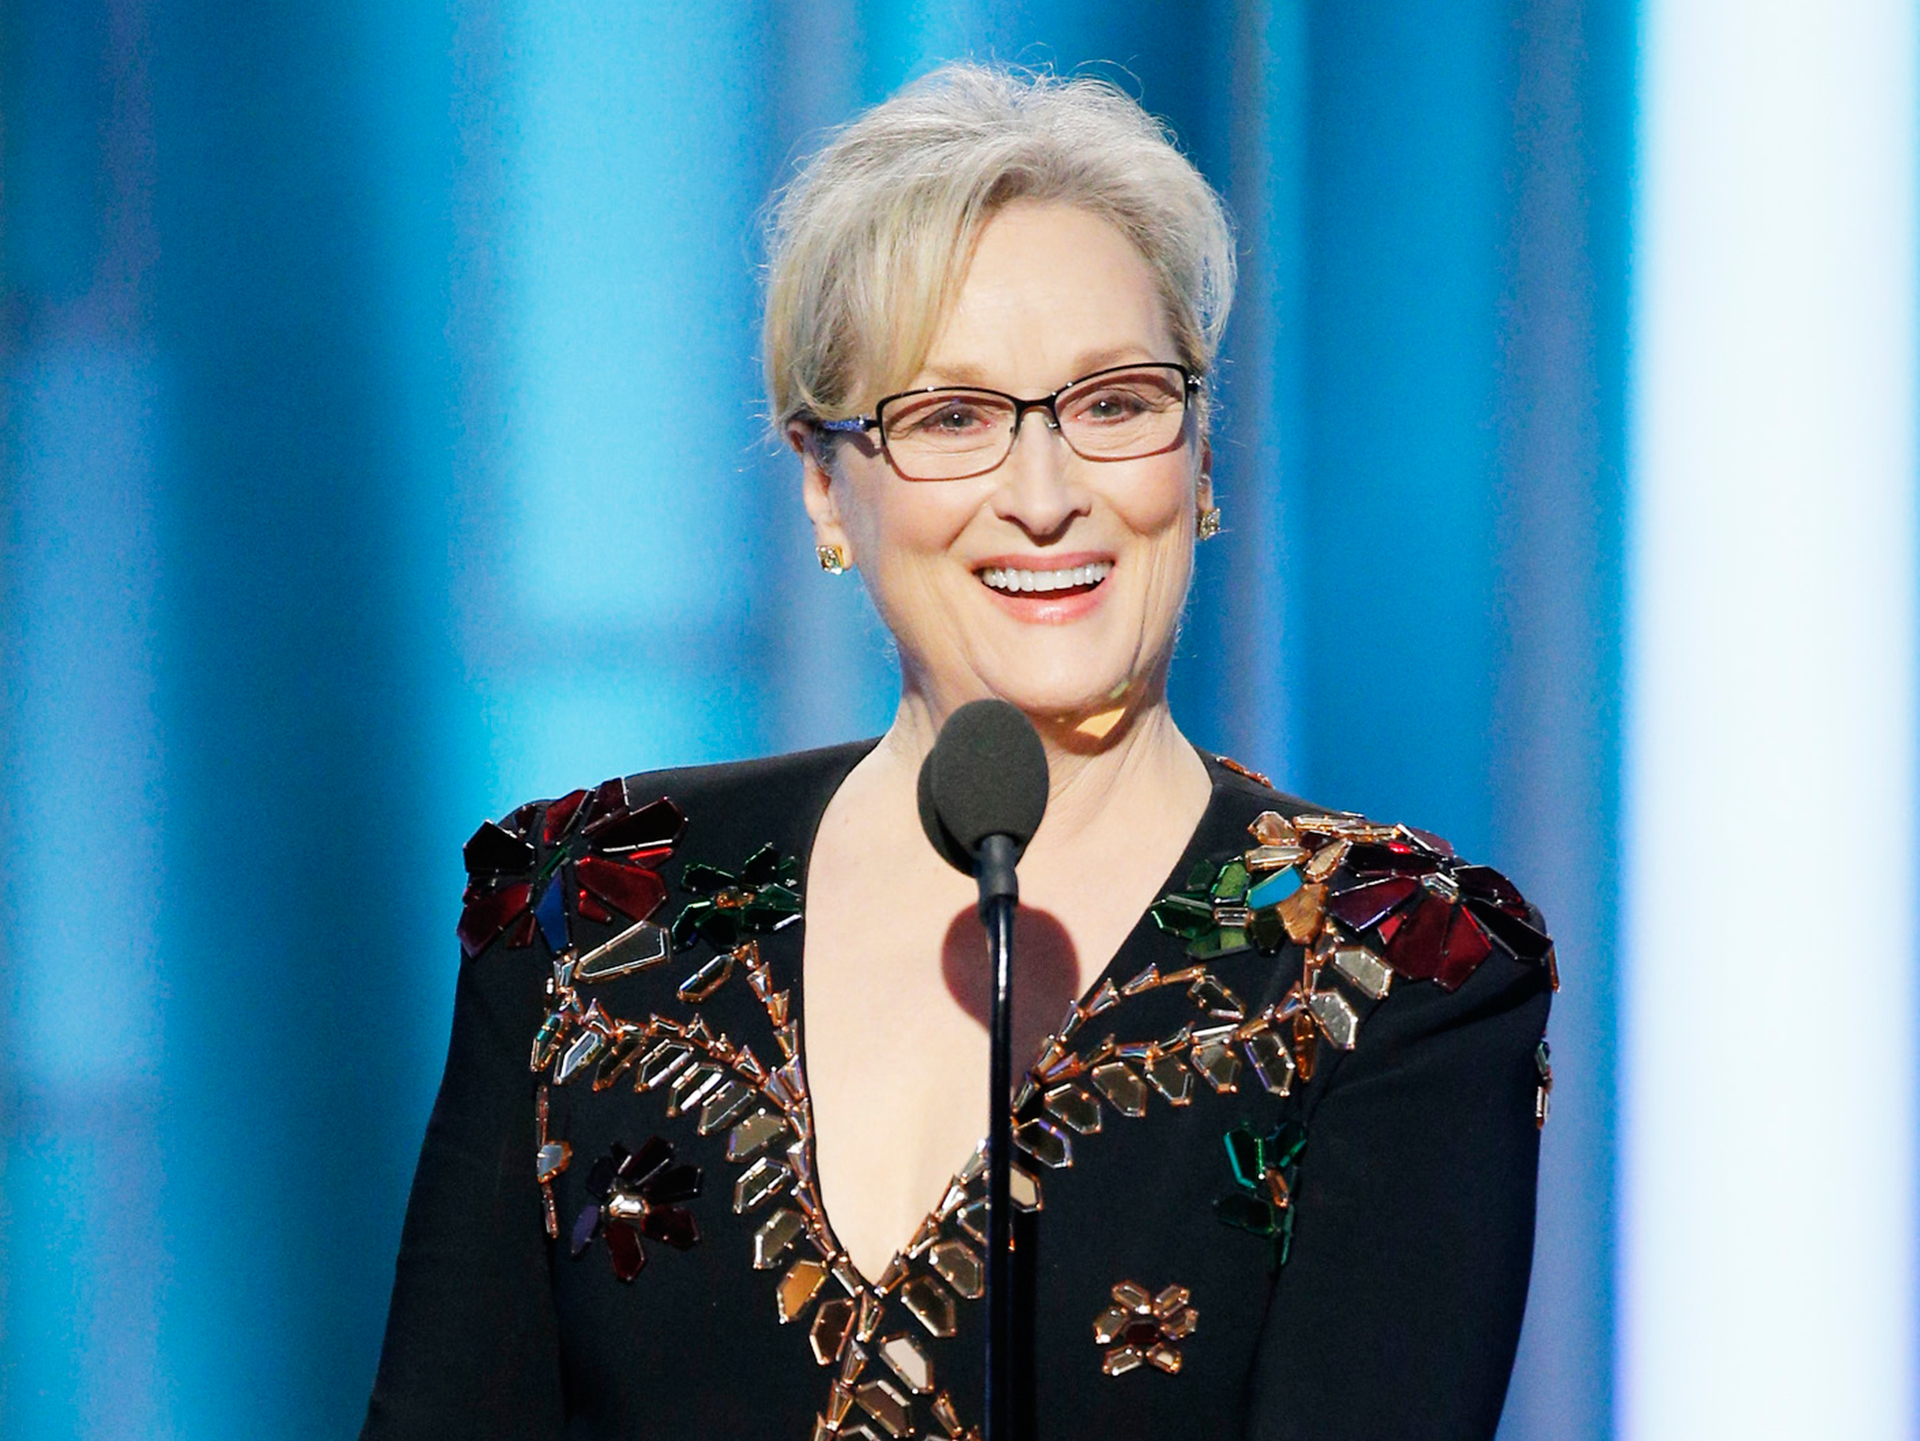 Meryl Streep celebrates her record 20th Oscar nod with the flawless GIF